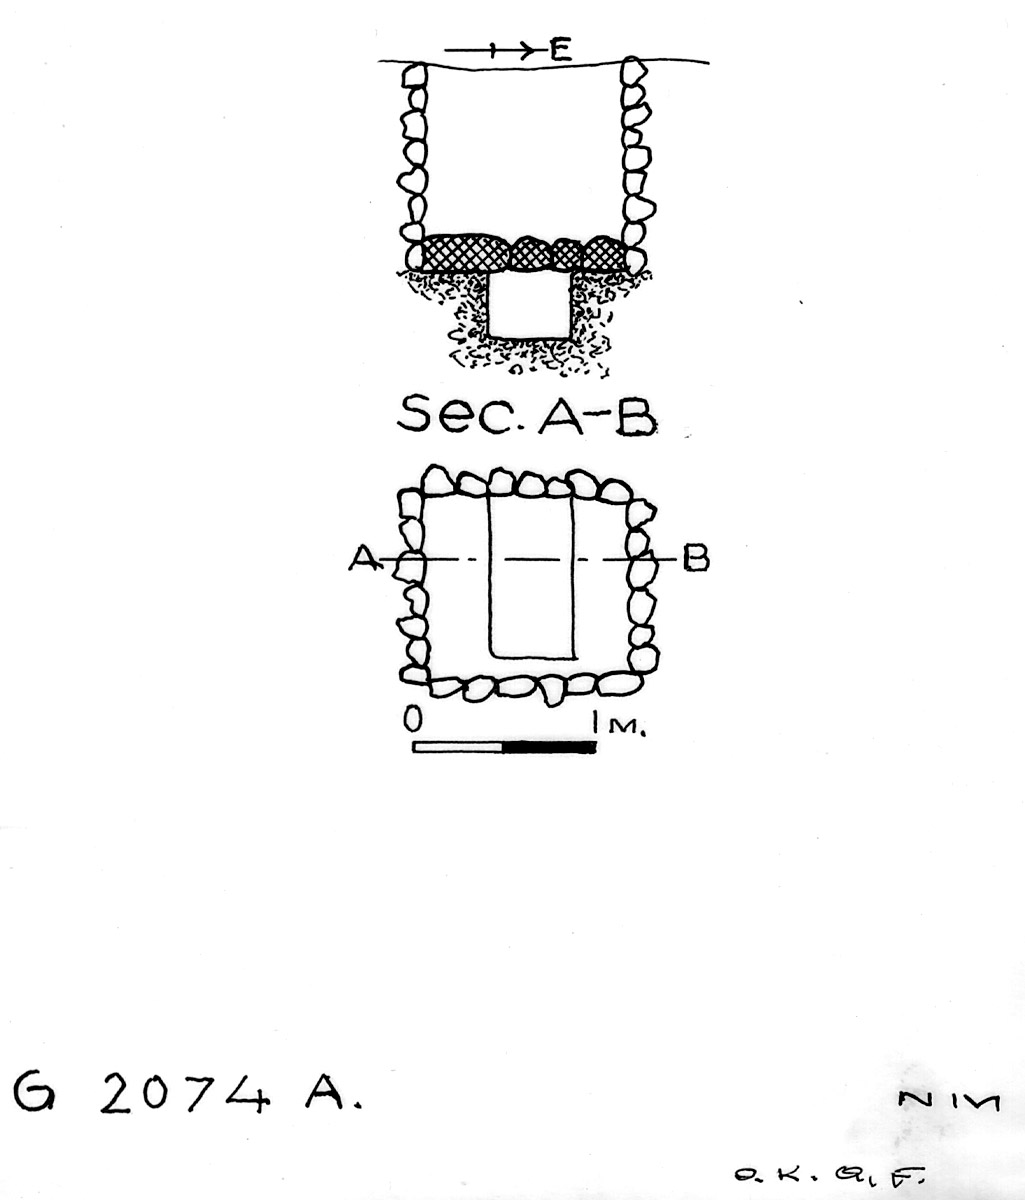 Maps and plans: G 2074, Shaft A